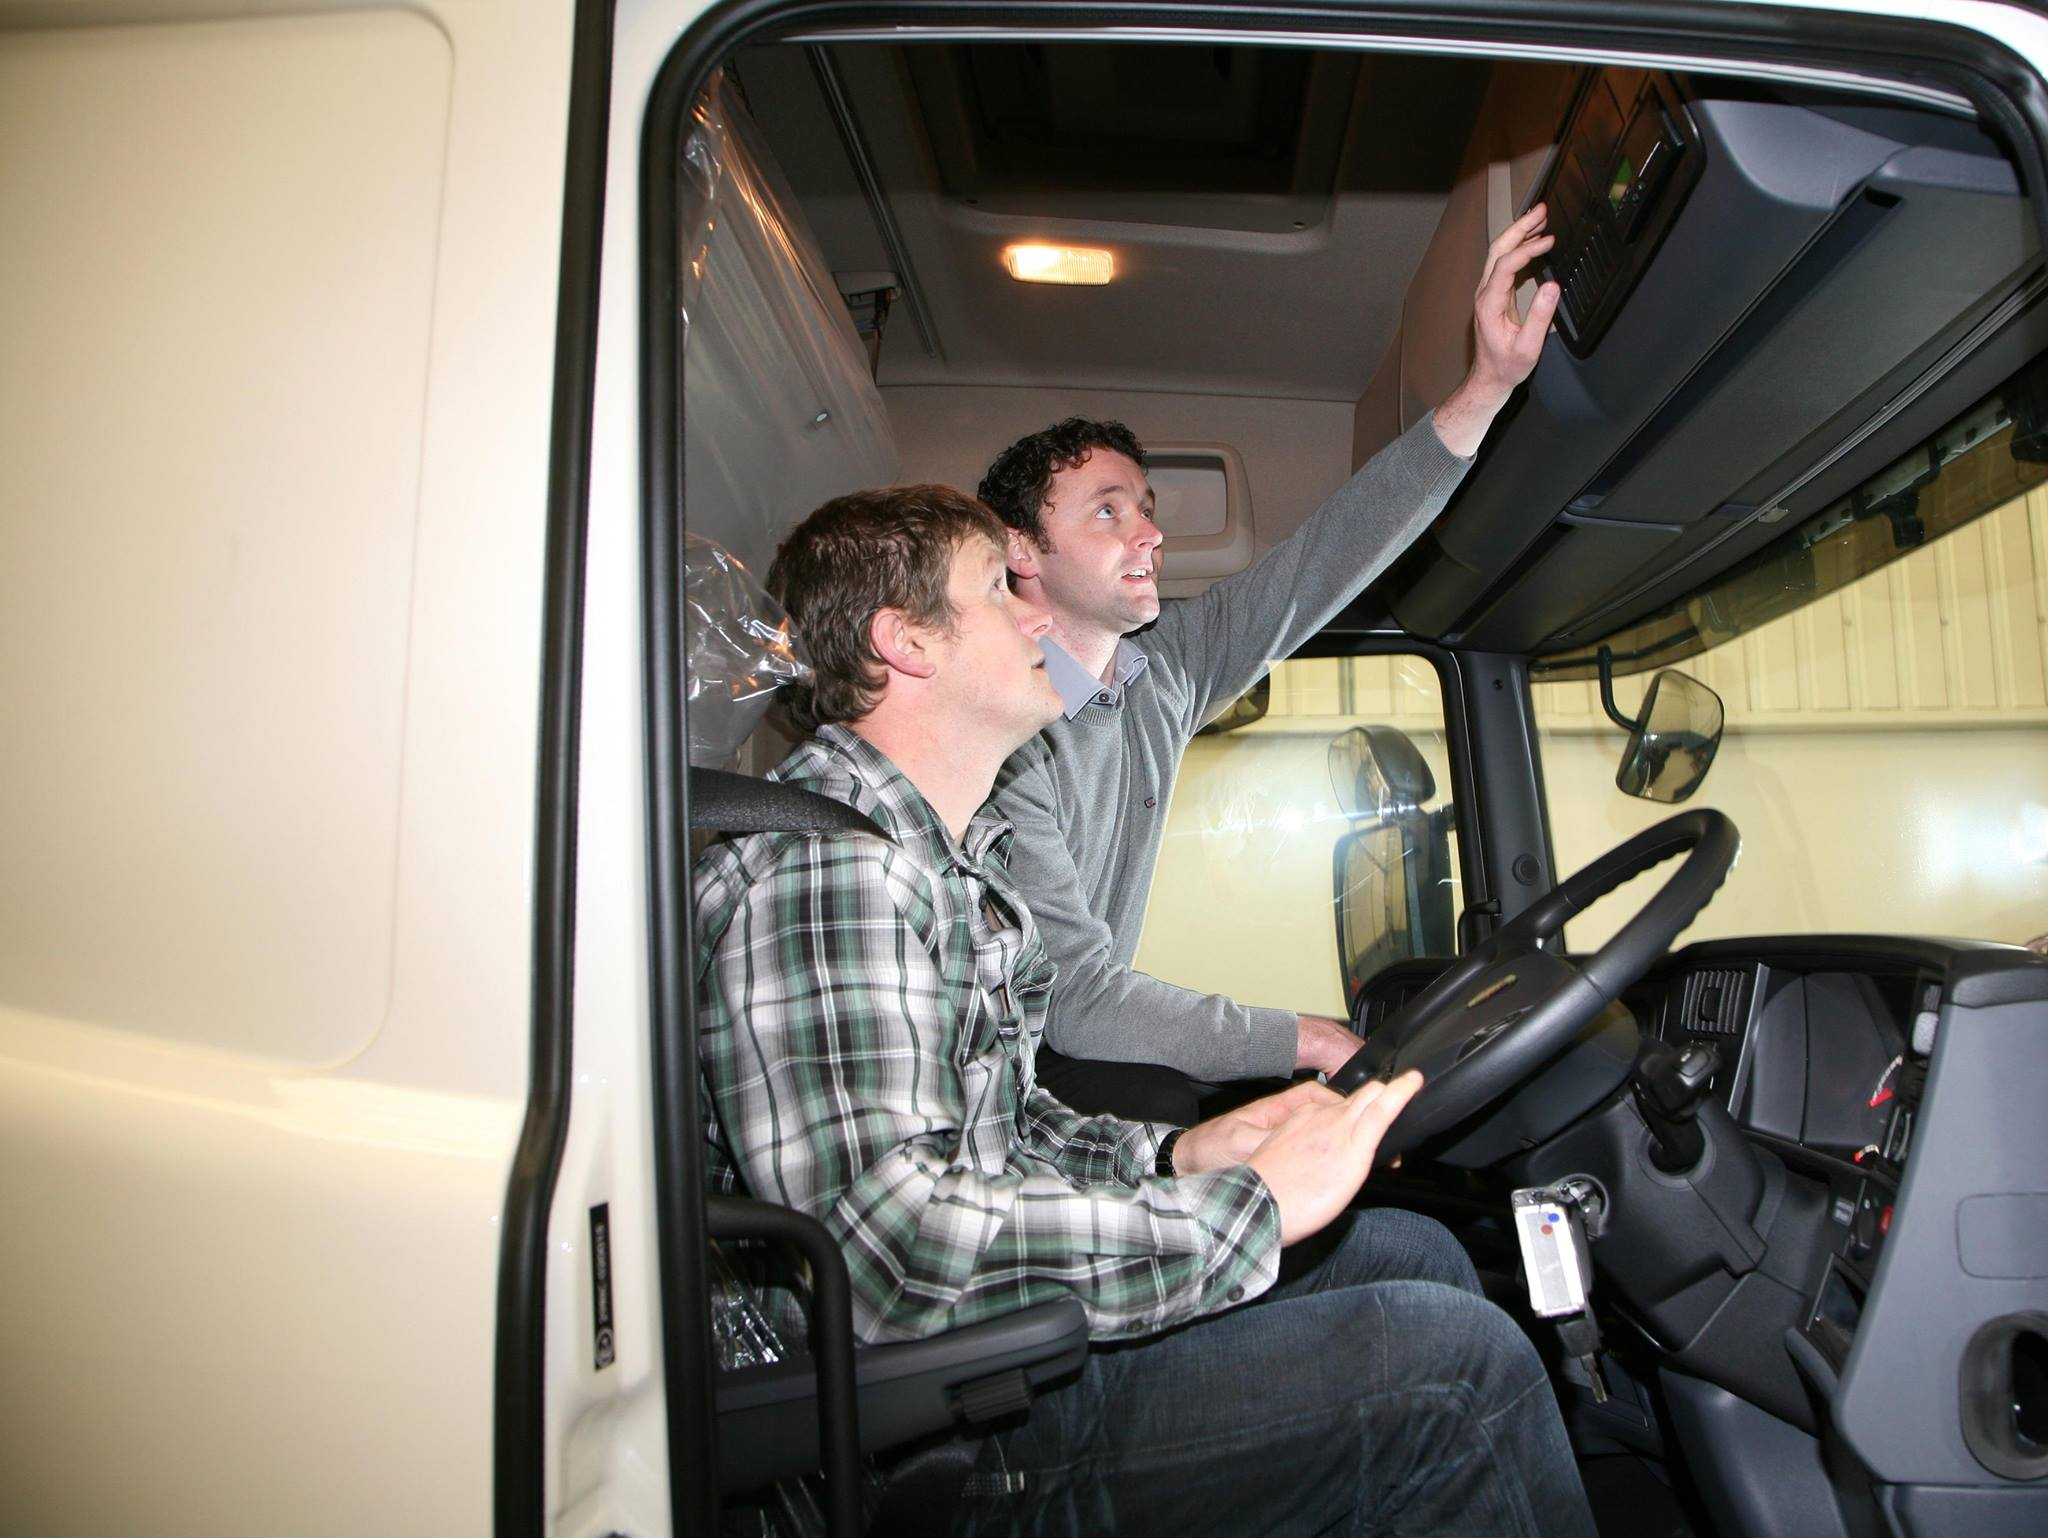 398.3 Qualification of Drivers or Operators